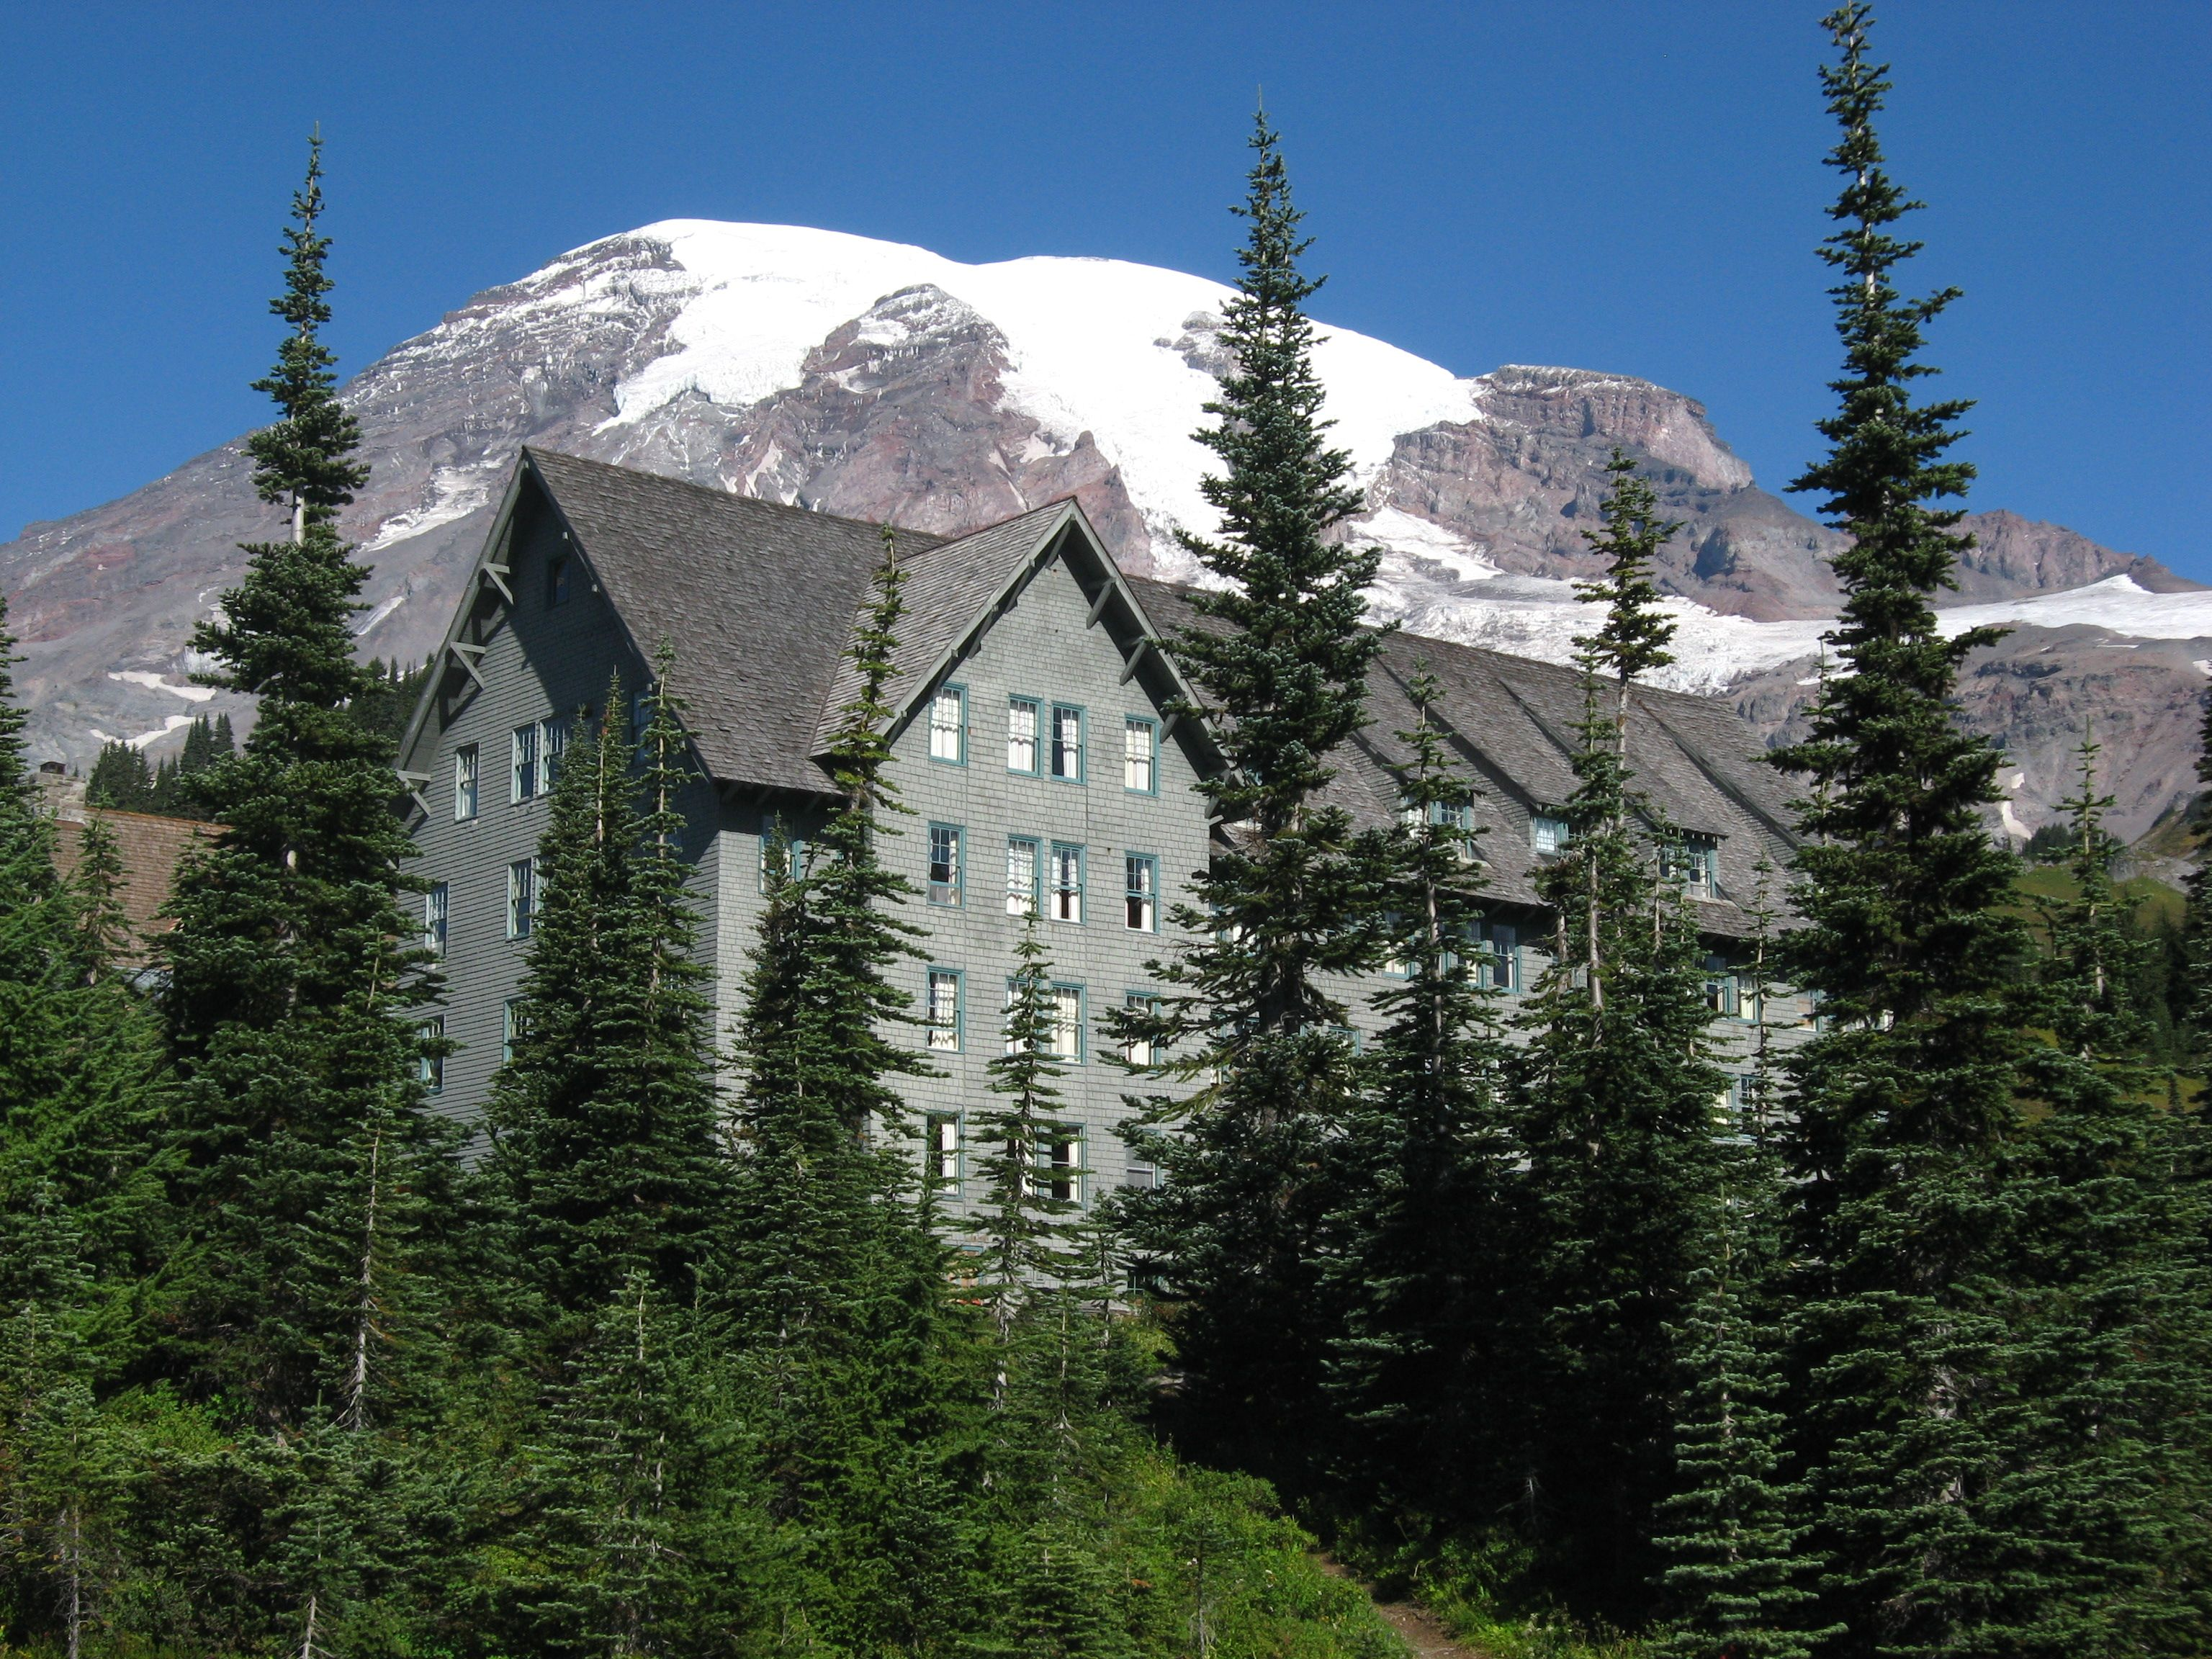 Paradise Inn Mt Rainier National Park Washington State USA